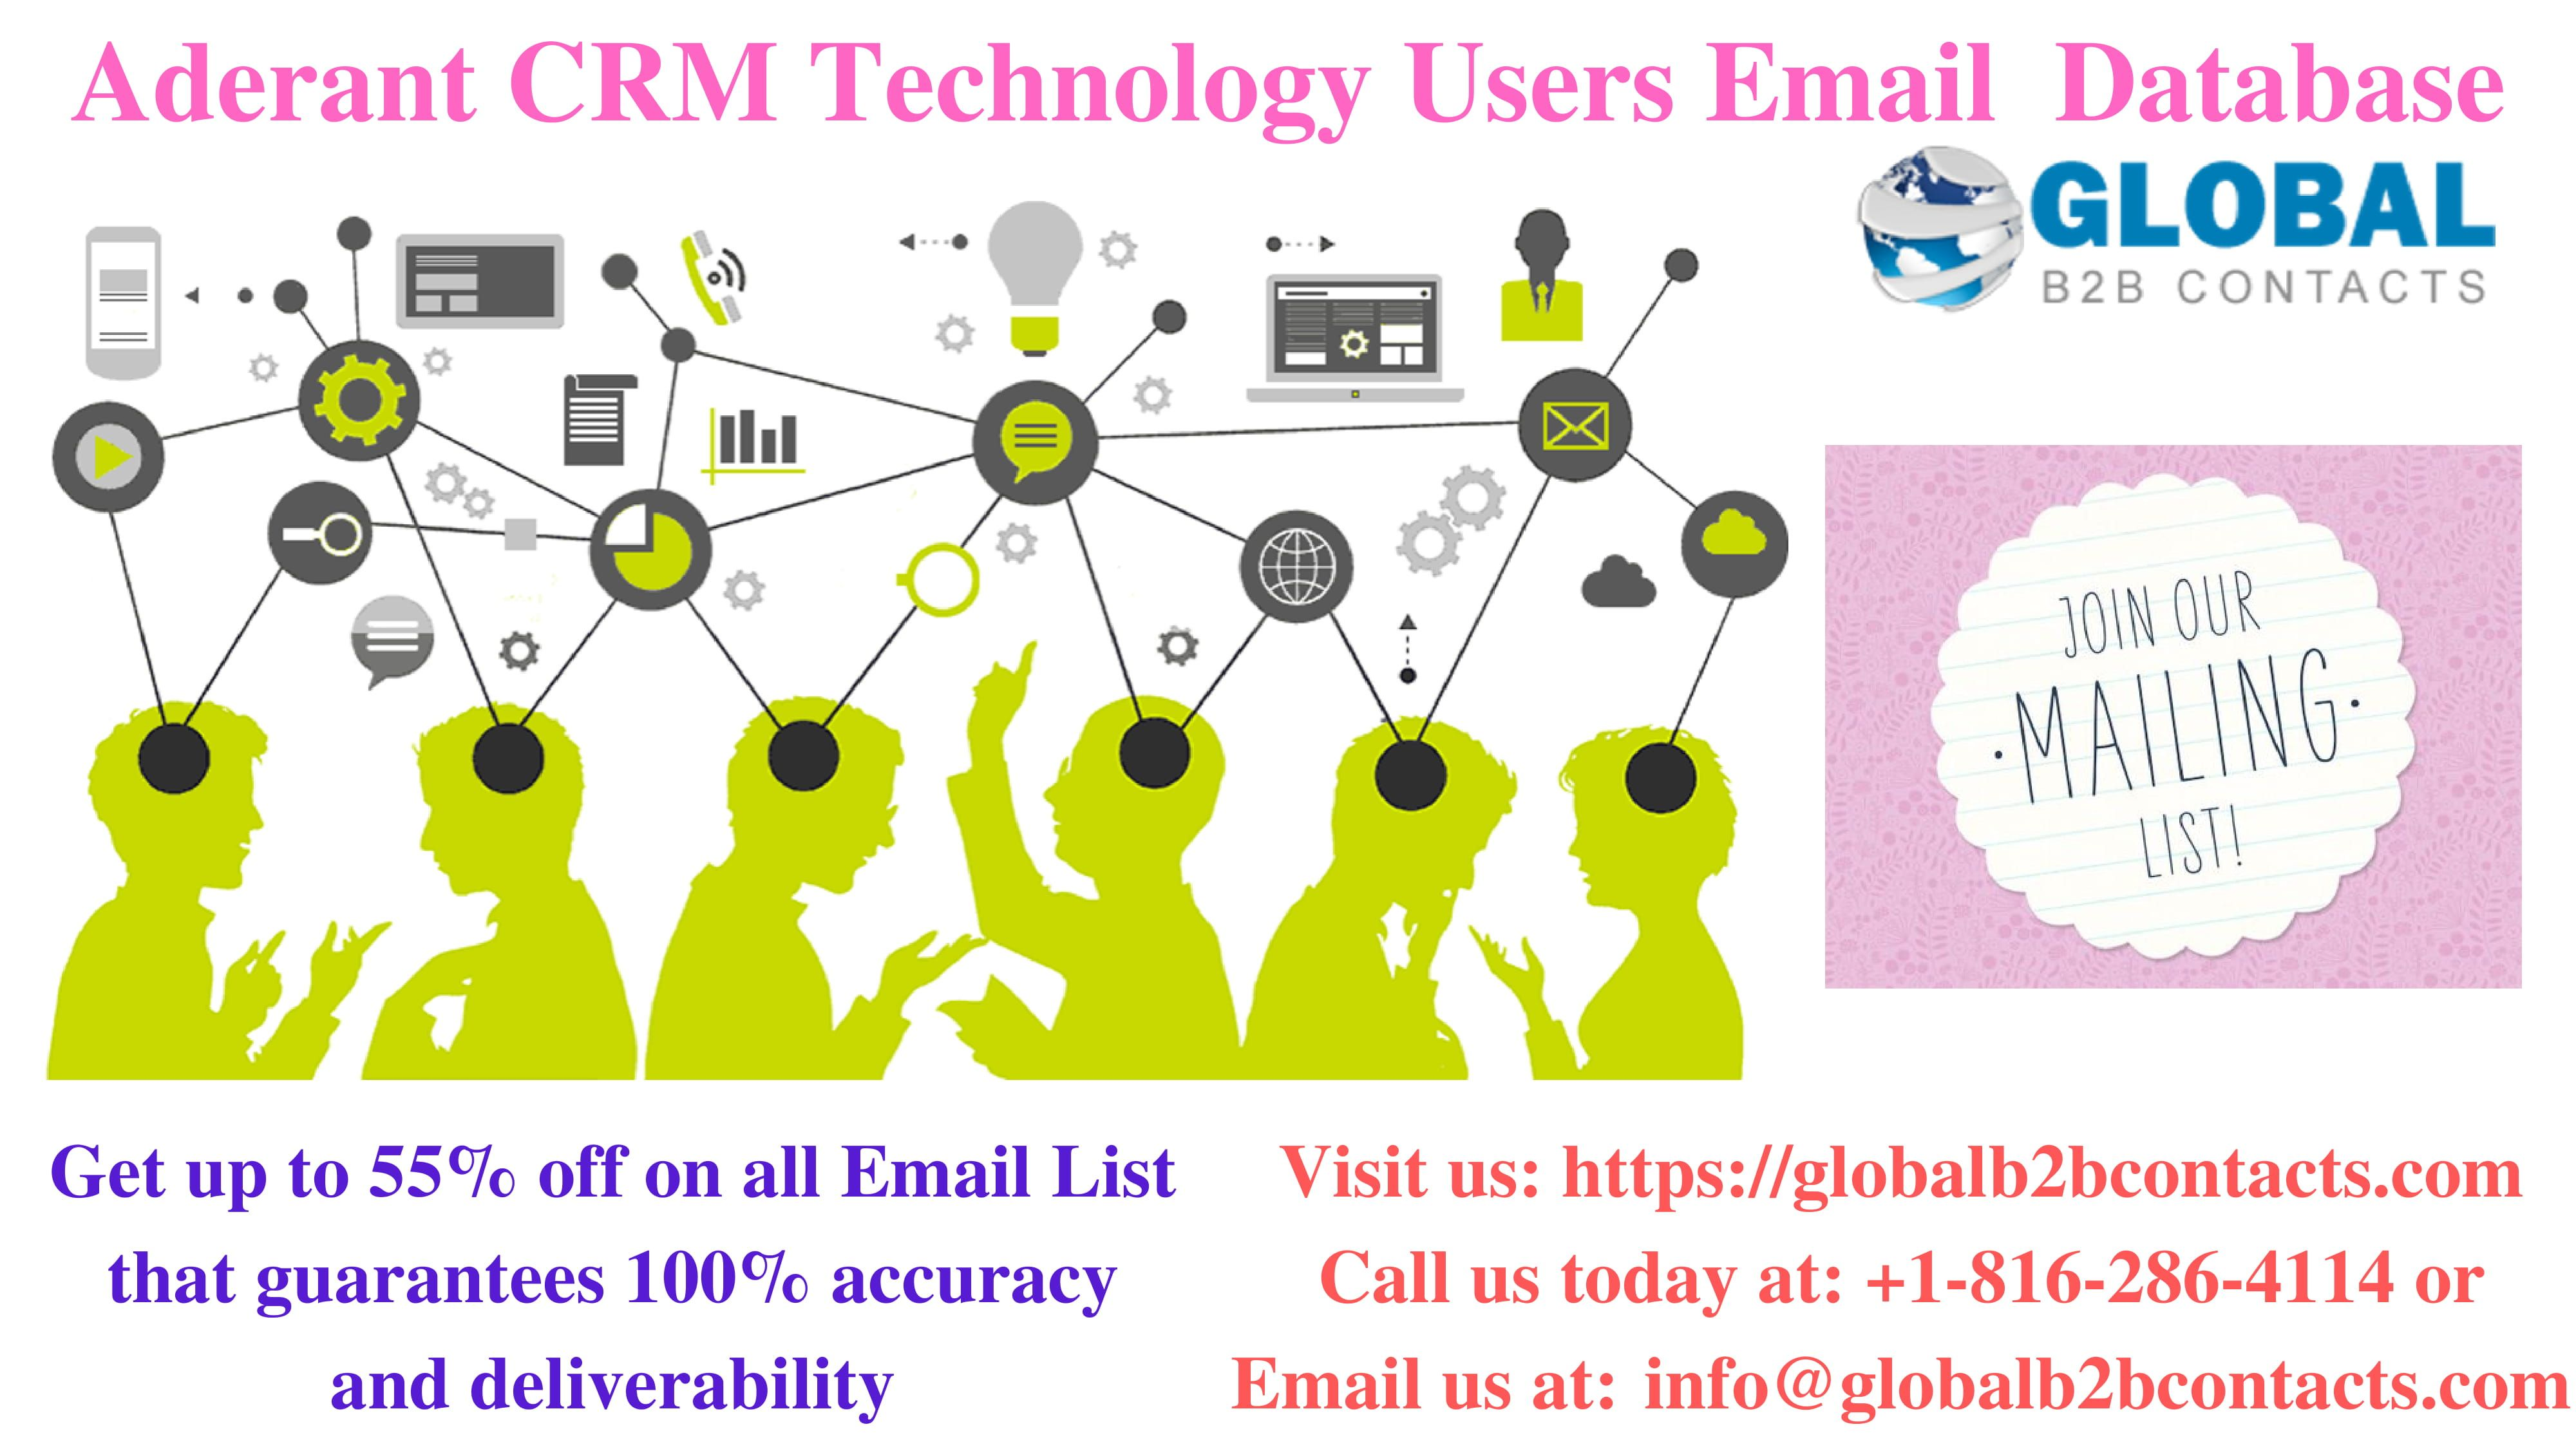 Our Aderant CRM Technology Users List that is stuffed with